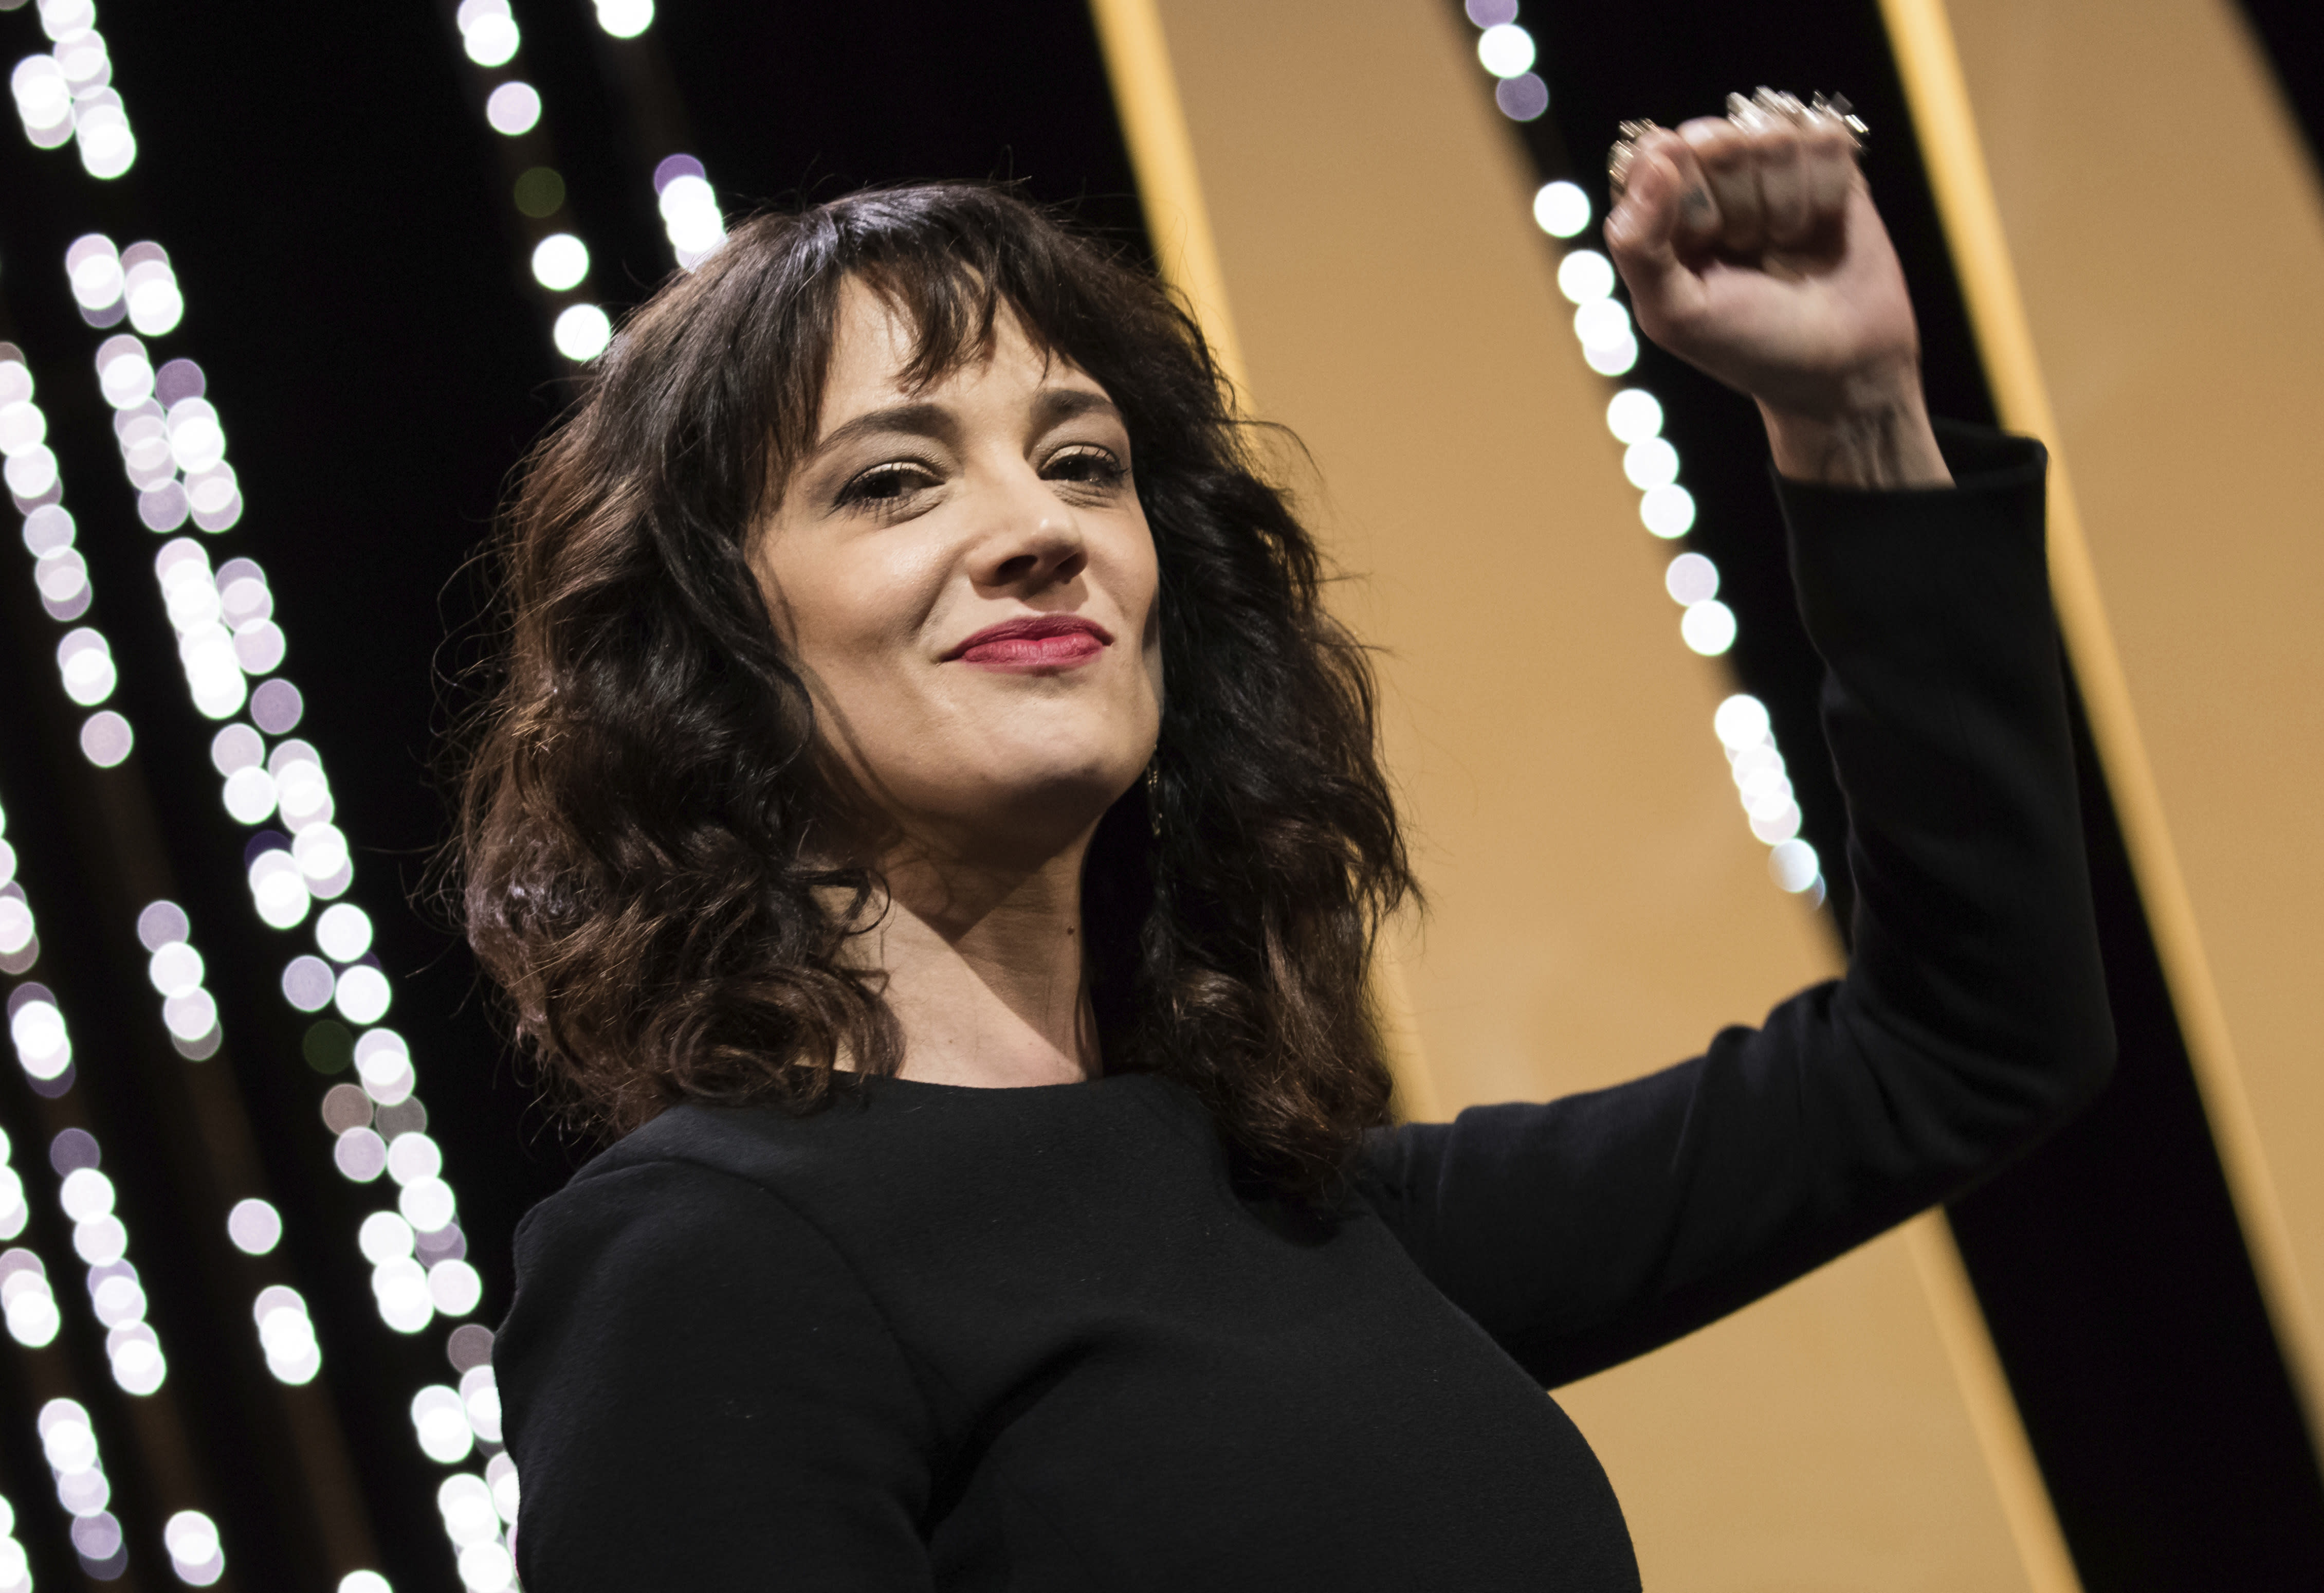 Report: Authorities looking into Asia Argento allegation